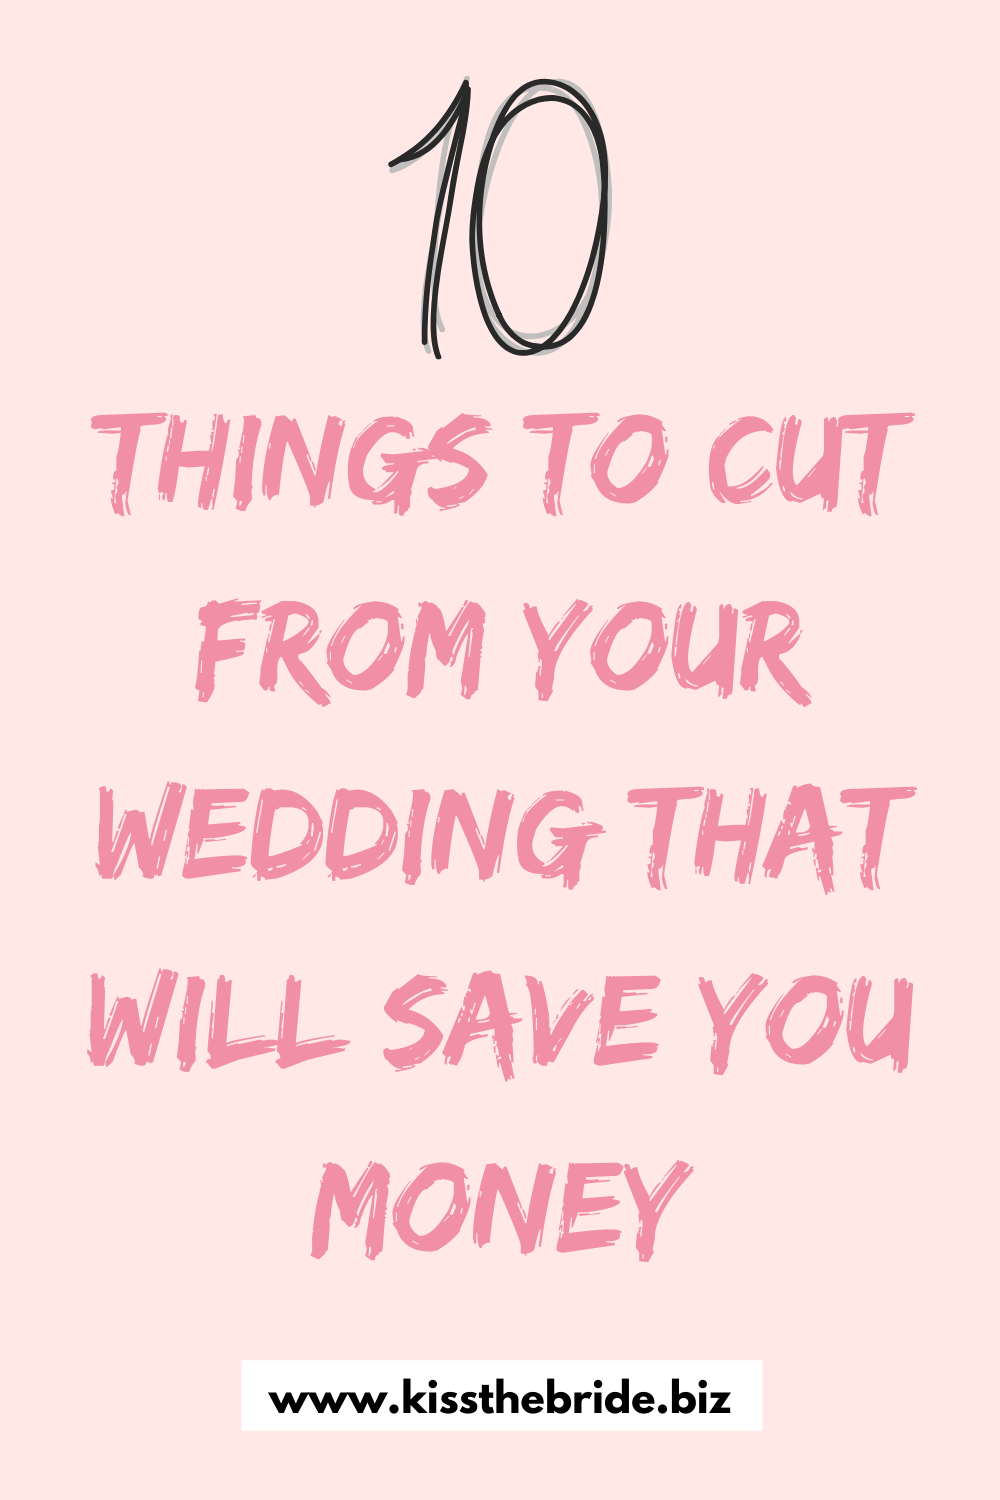 Wedding things that waste money